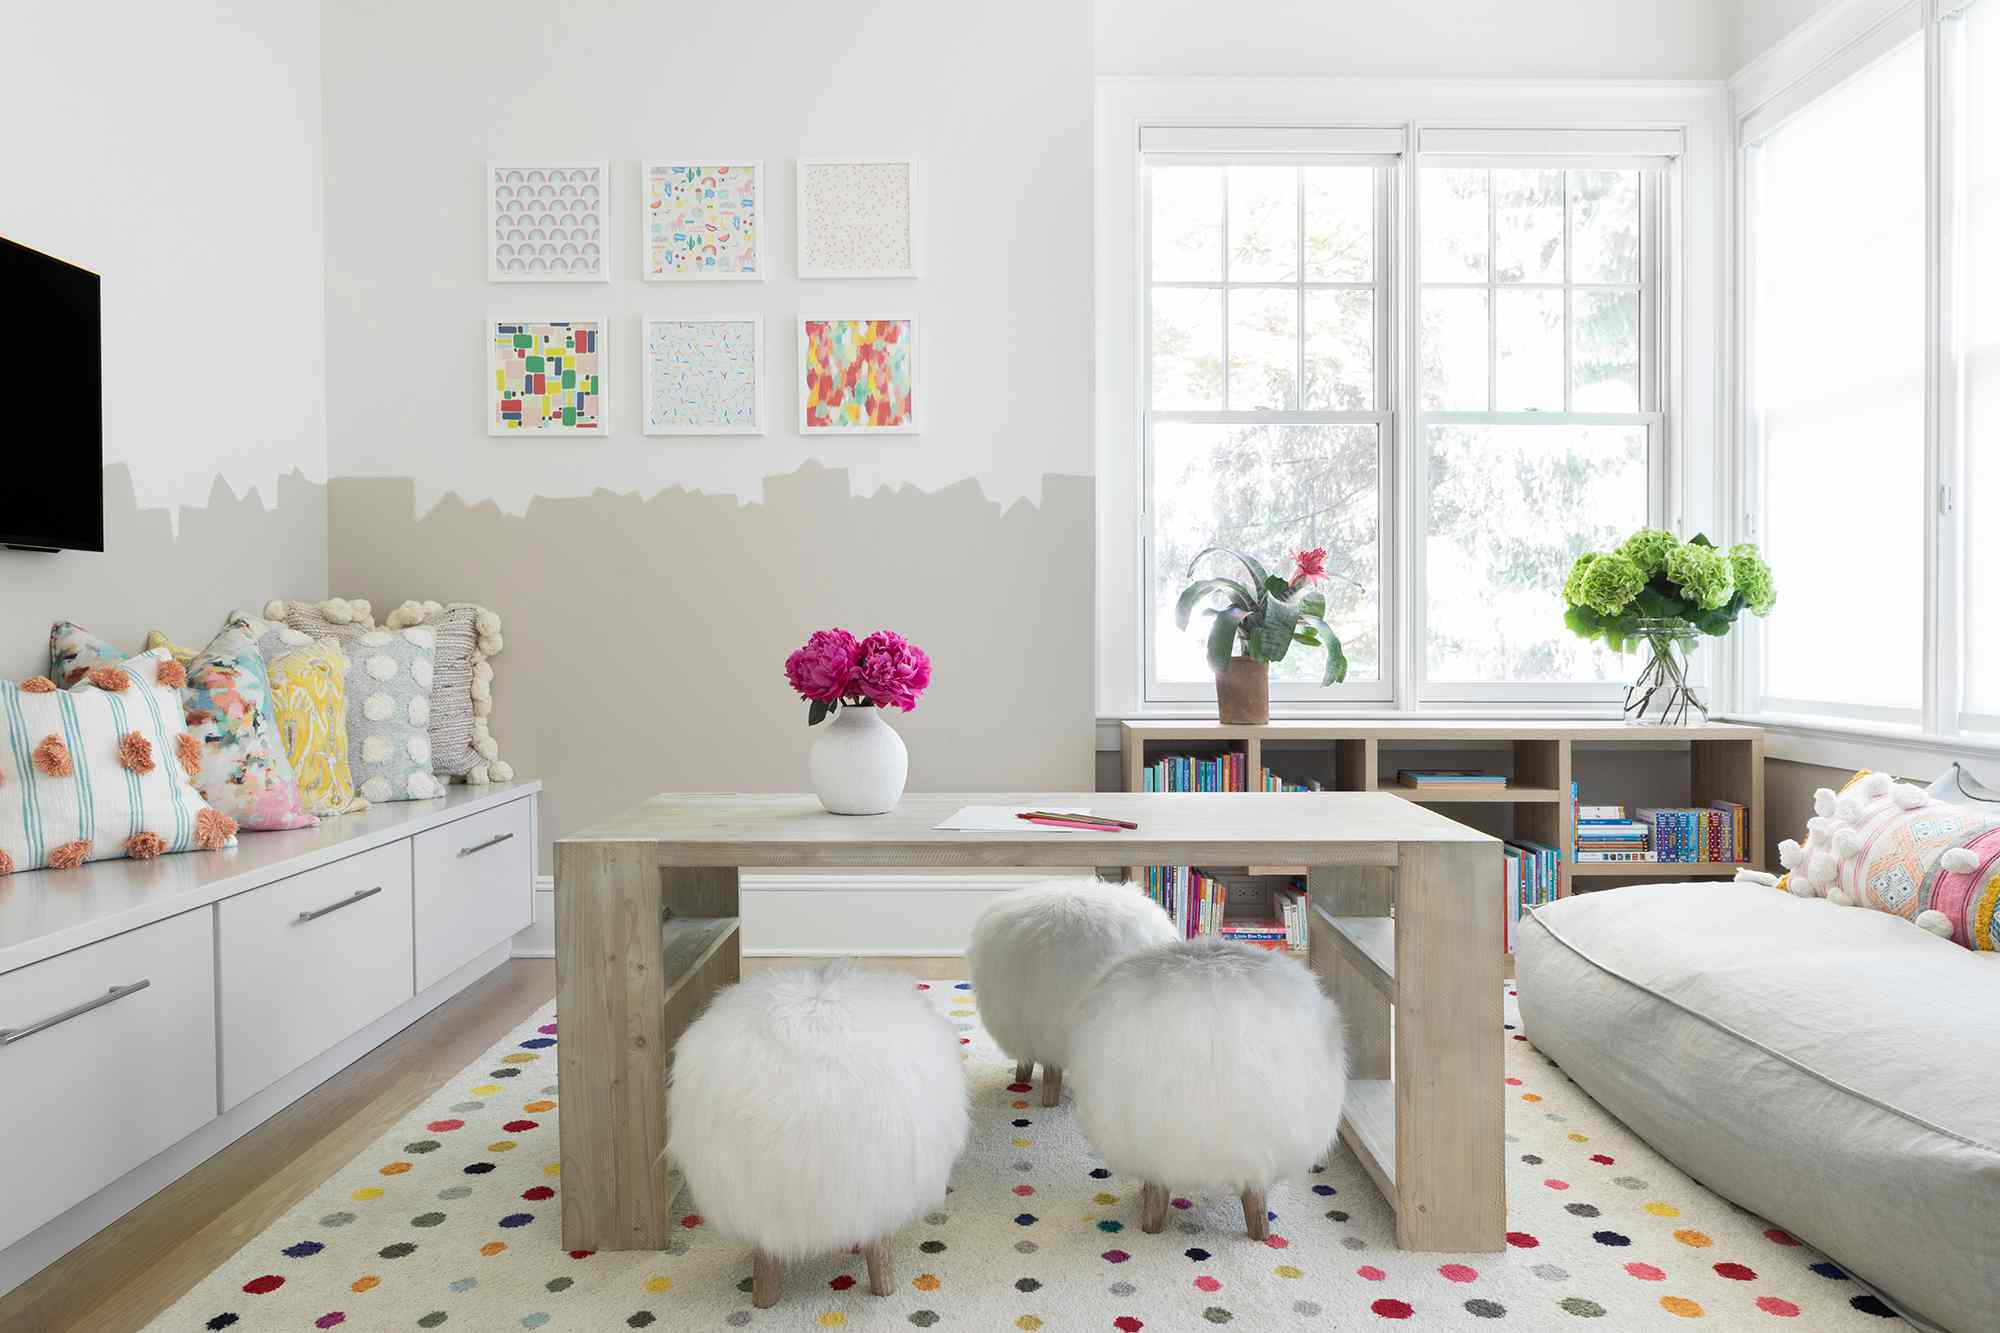 new jersey home tour - children's playroom